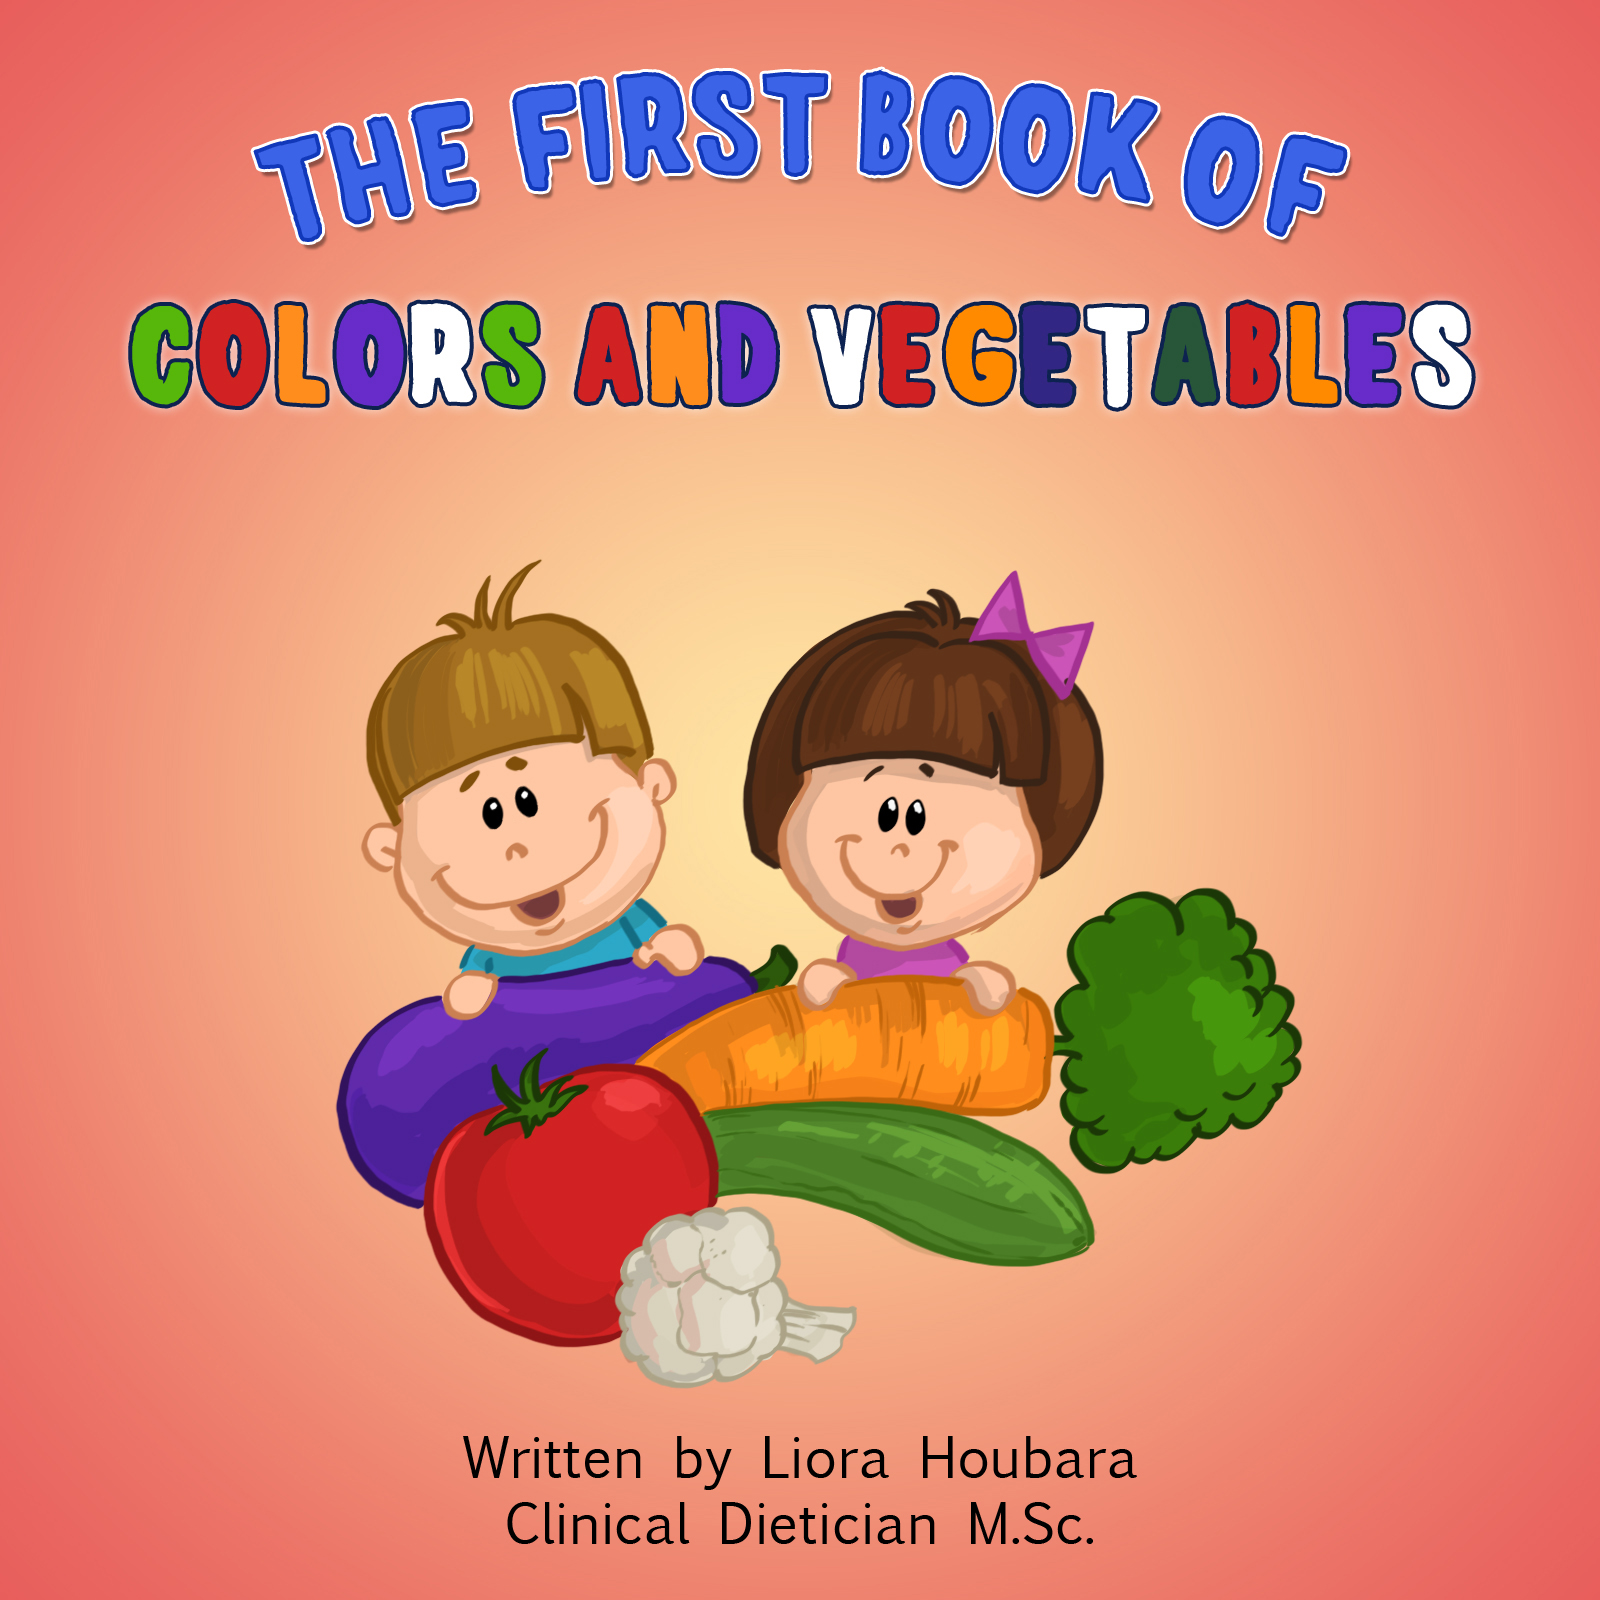 The First book of Colors and Vegetab